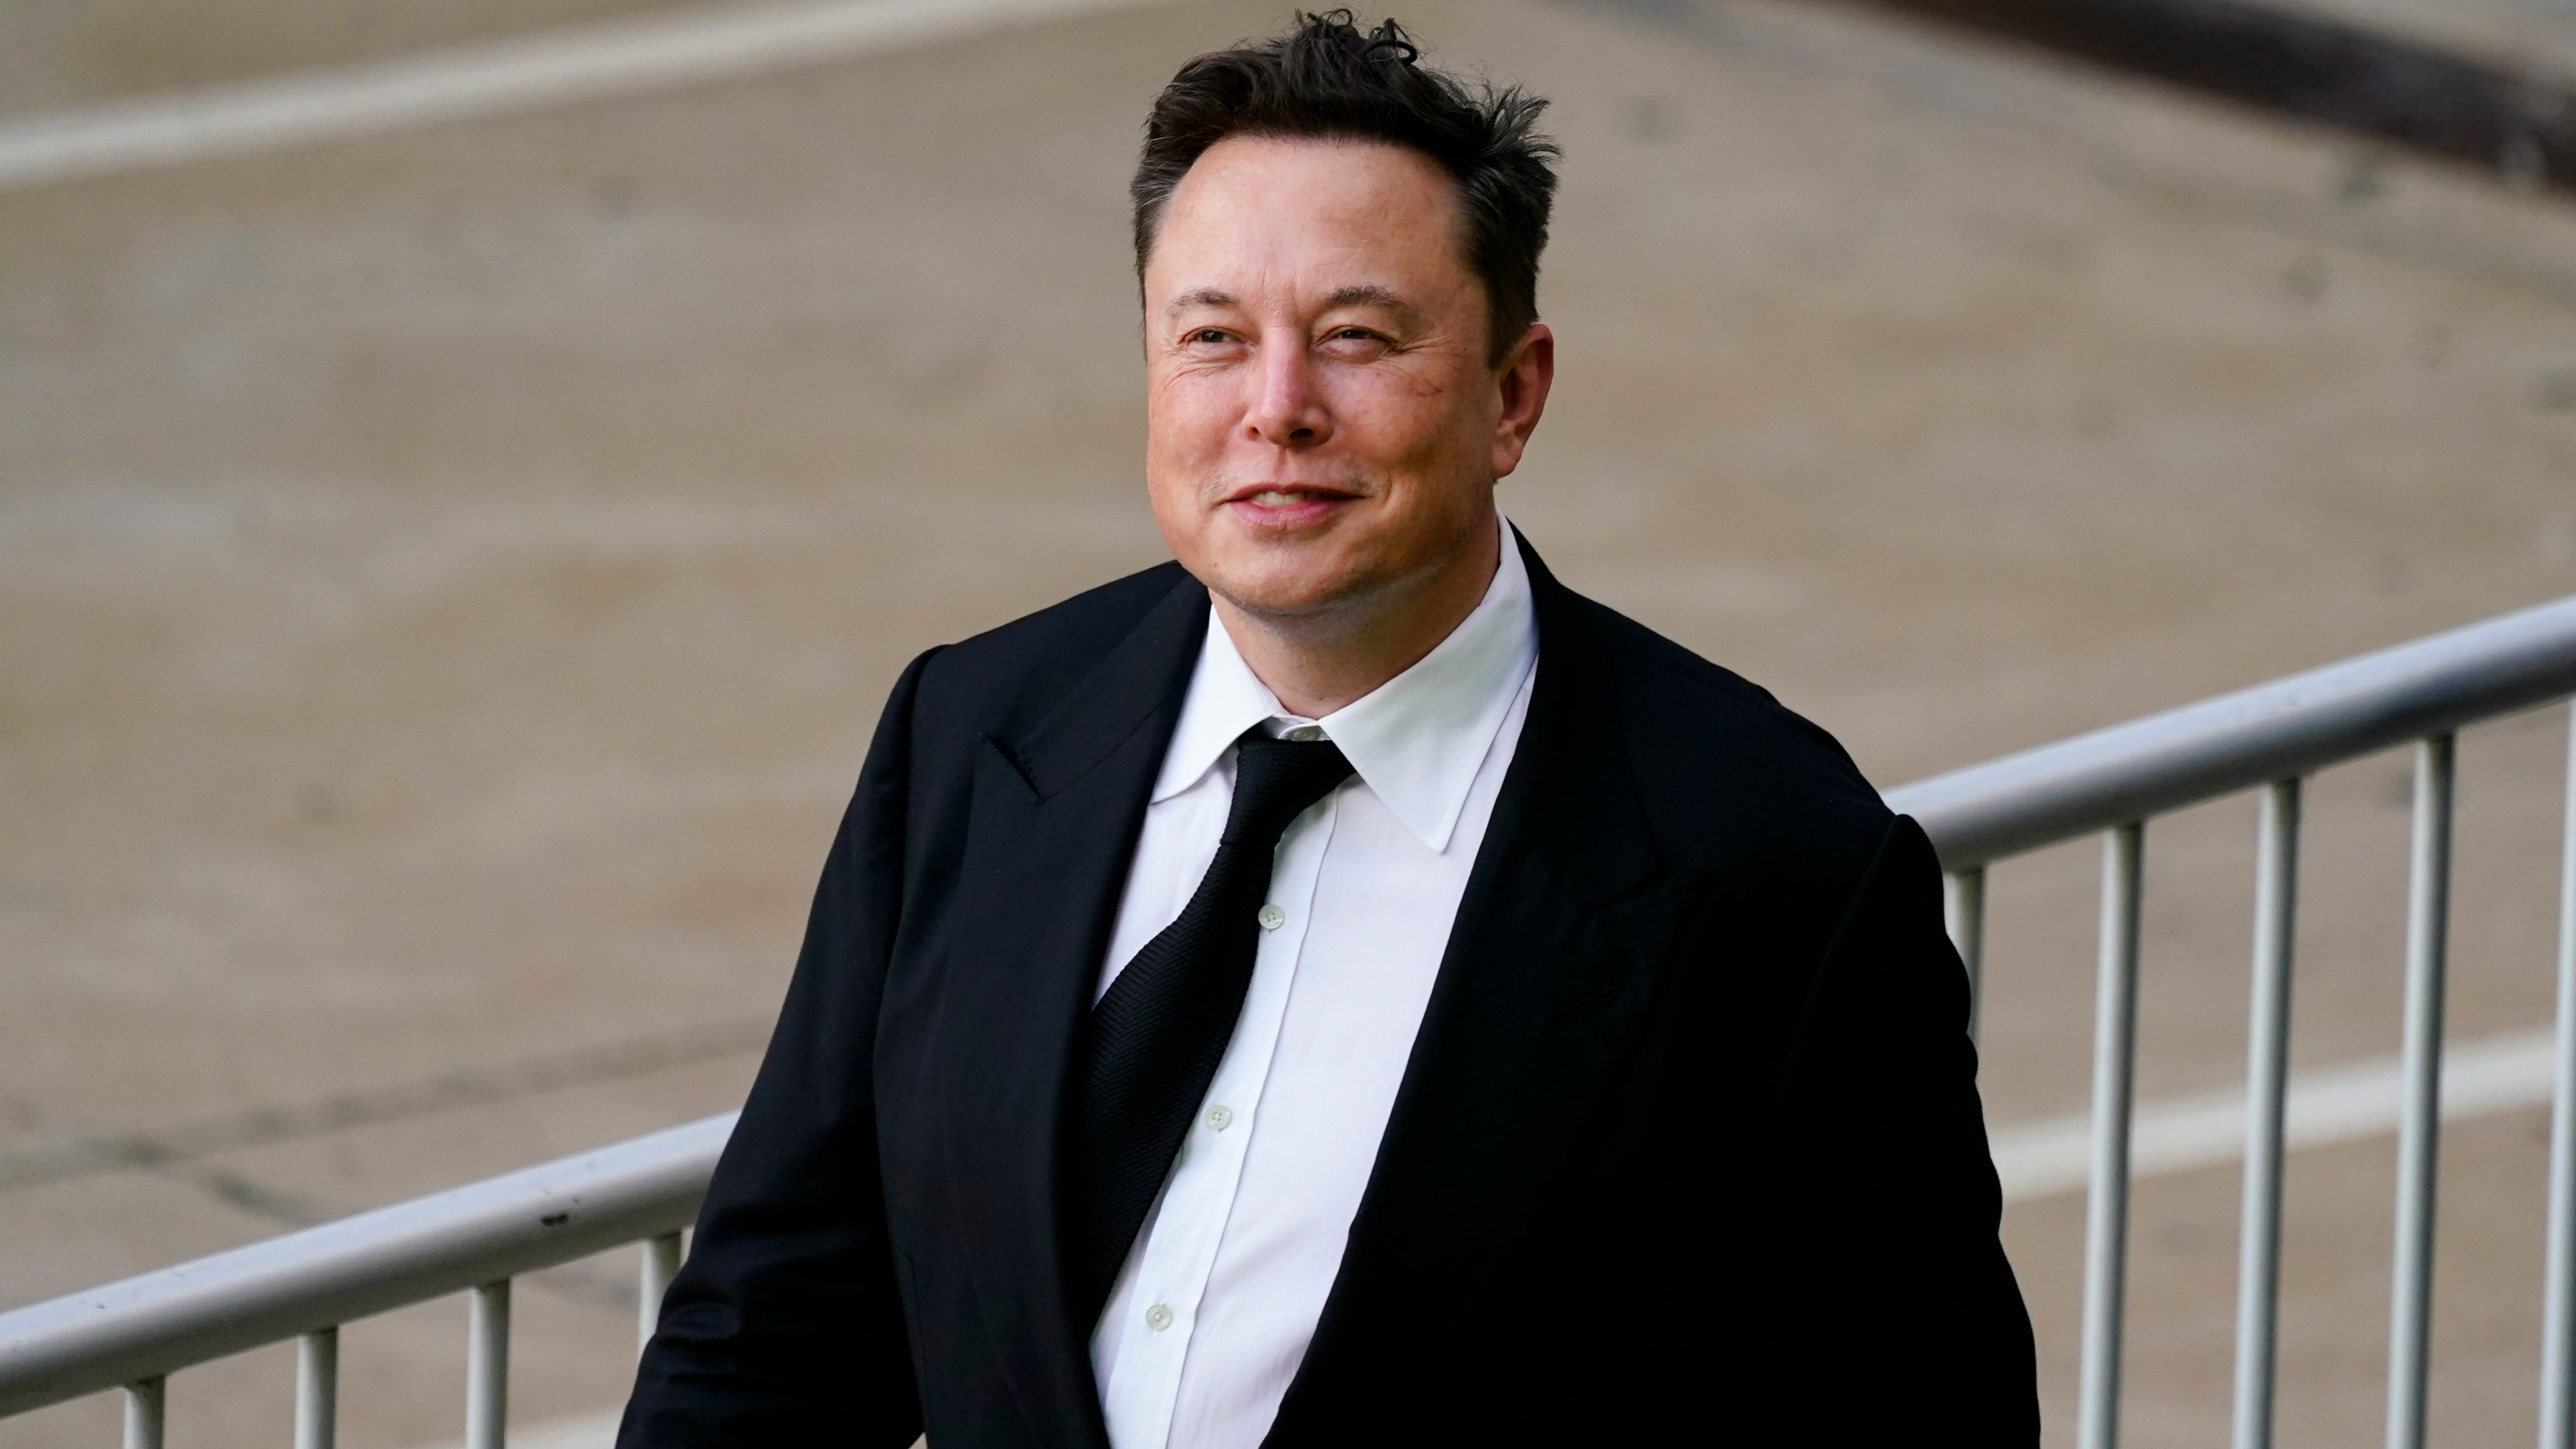 Elon Musk walks from the justice center in Wilmington, Del., Monday, July 12, 2021. Musk took to a witness stand Monday to defend his company's 2016 acquisition of a troubled company called SolarCity against a shareholder lawsuit that claims he's to blame for a deal that was rife with conflicts of interest and never delivered the profits he had promised.